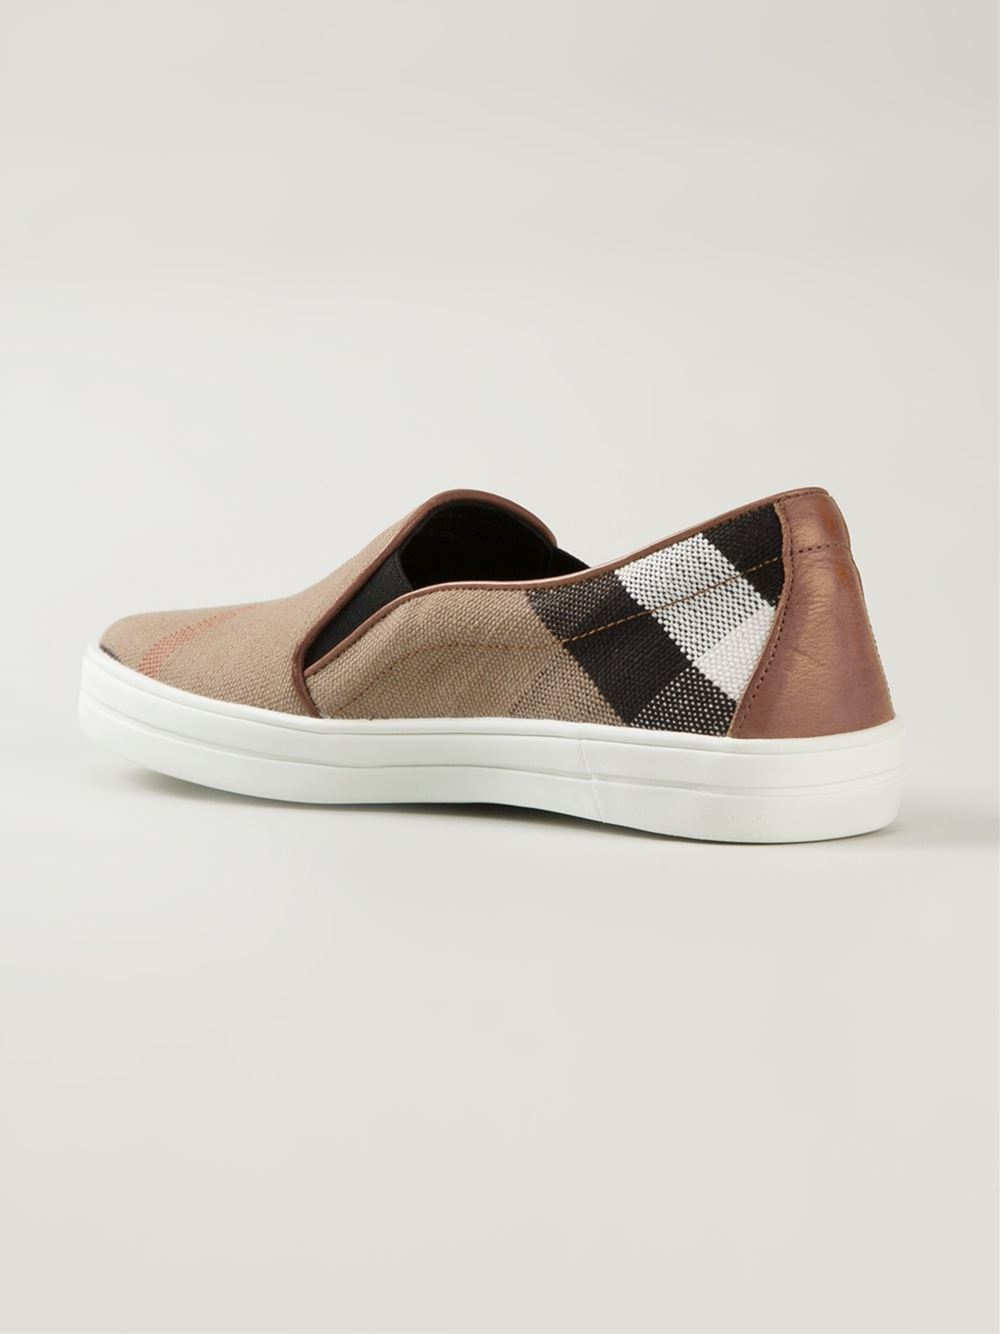 To Buy Buy House Check and Leather Slip-on Sneakers - Brown Burberry 2018 Very Cheap j3VuzF